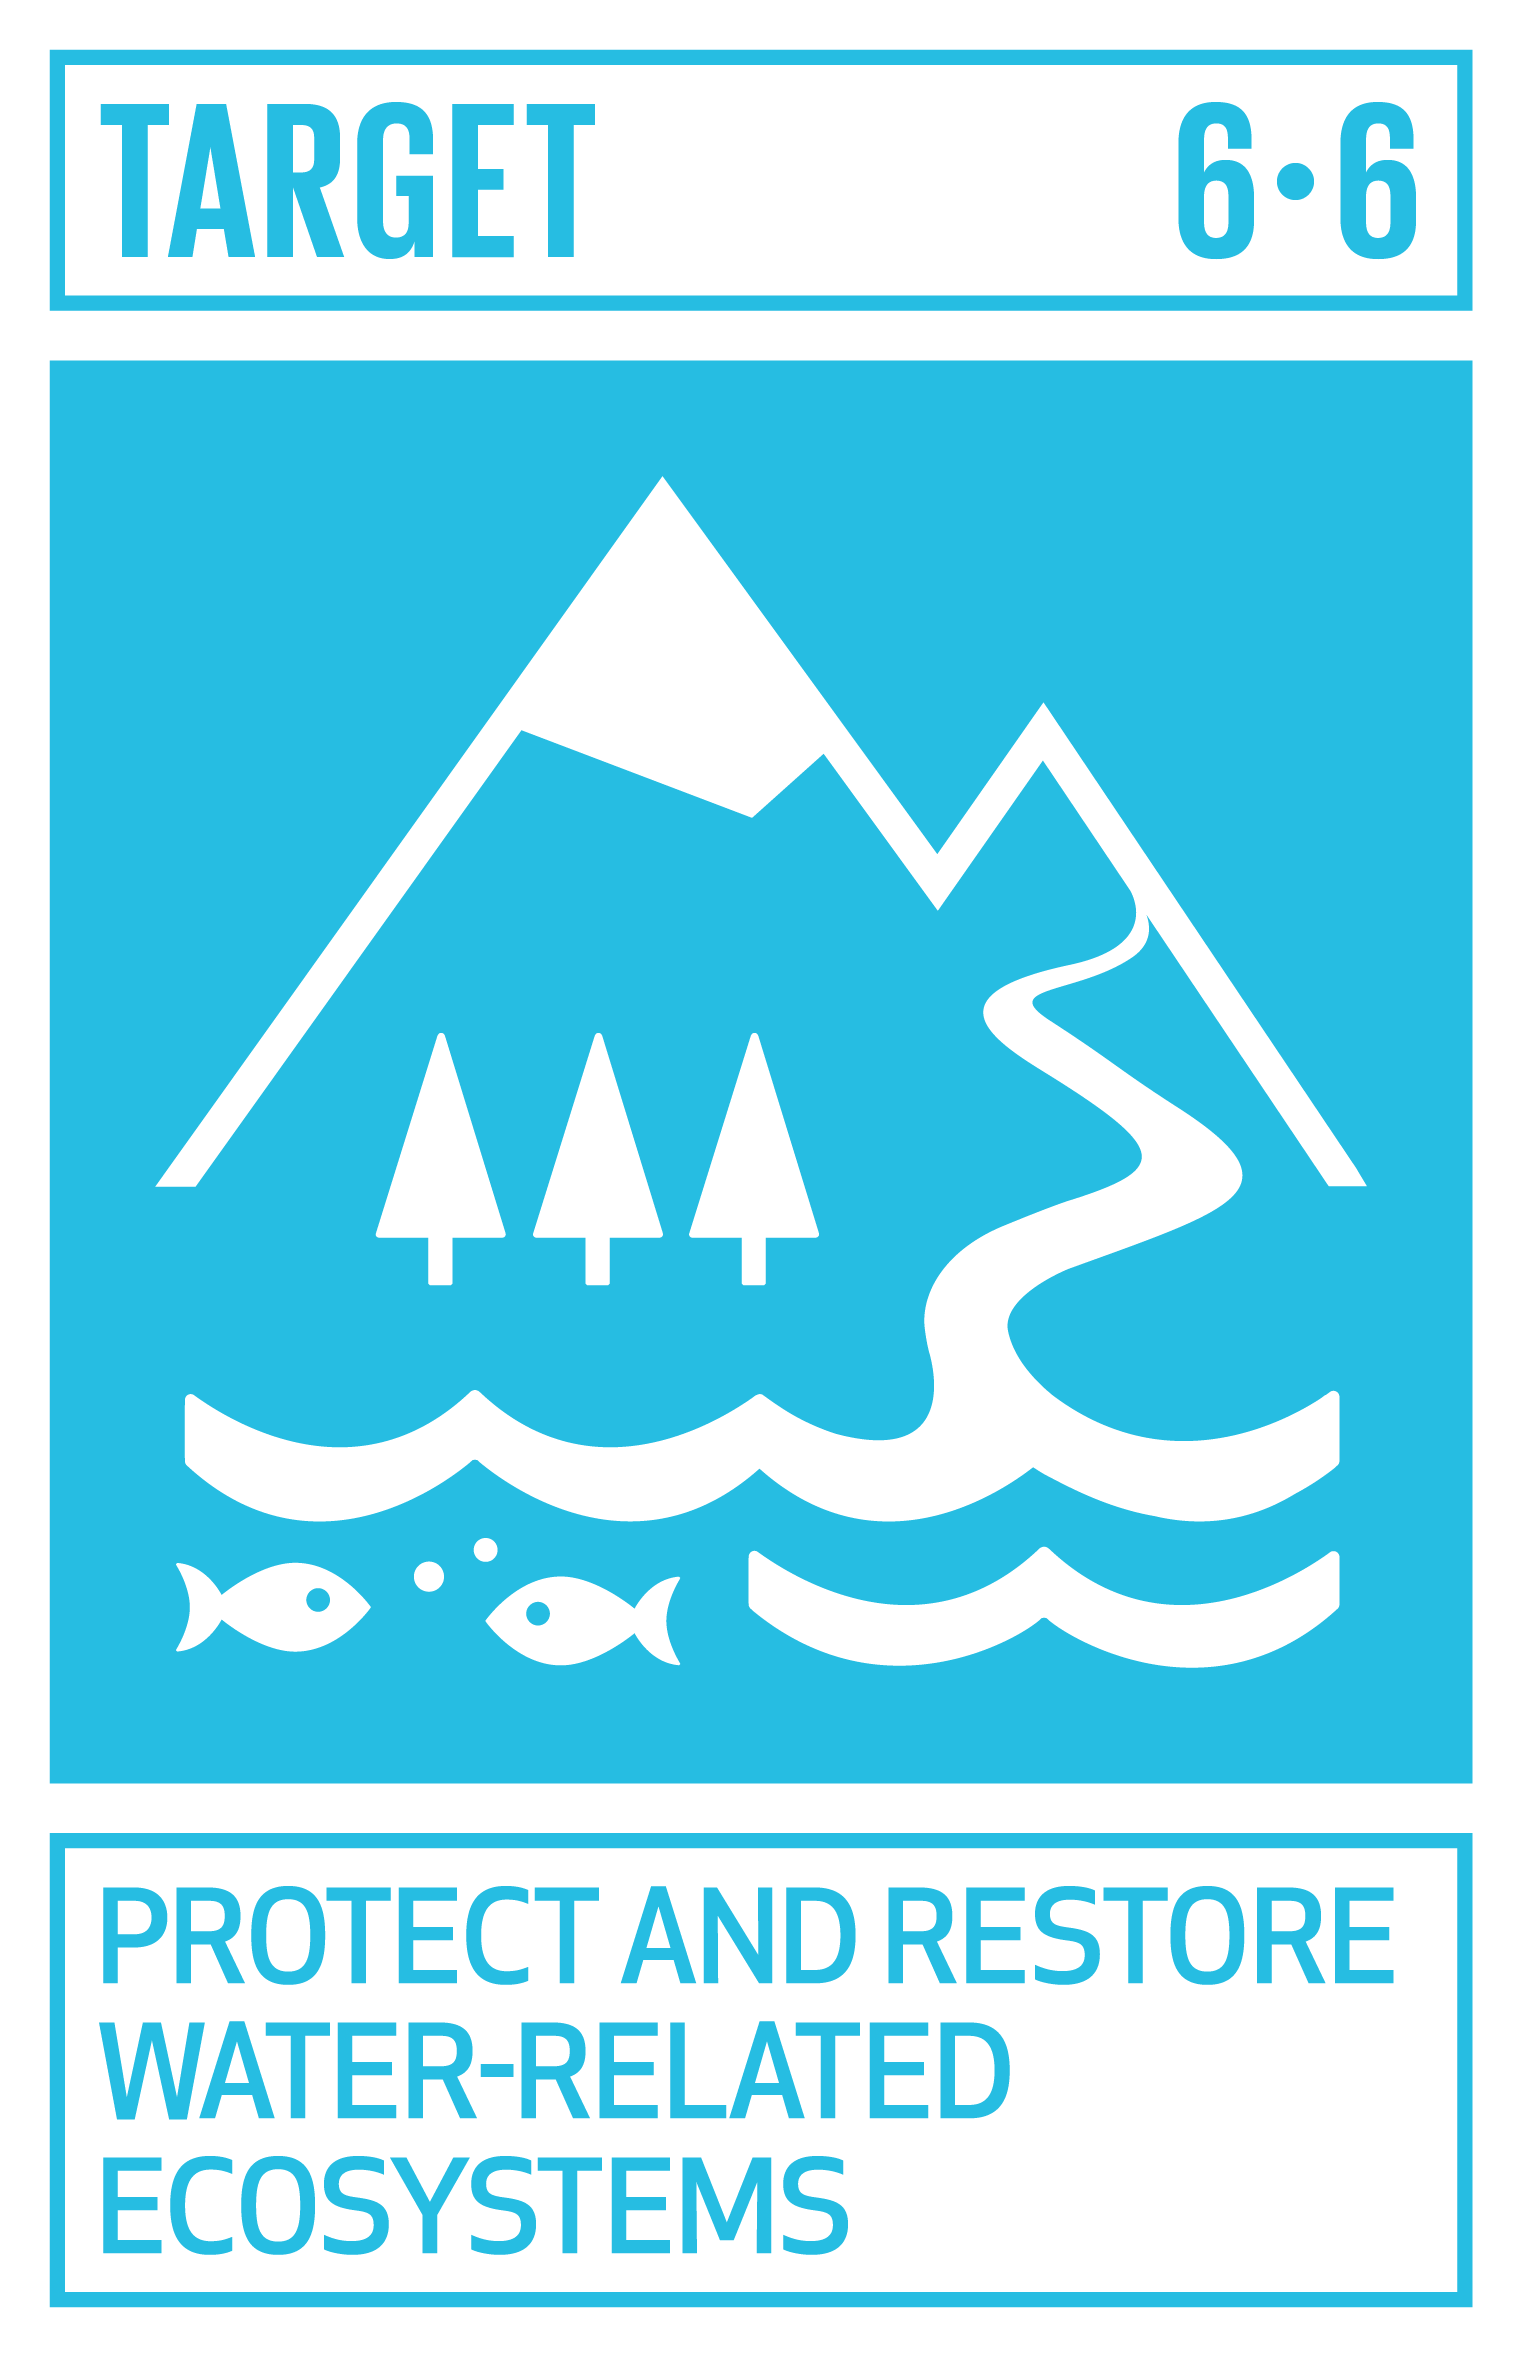 By 2020, protect and restore water-related ecosystems, including mountains, forests, wetlands, rivers, aquifers and lakes.   INDICATOR    6.6.1  Change in the extent of water-related ecosystems over time